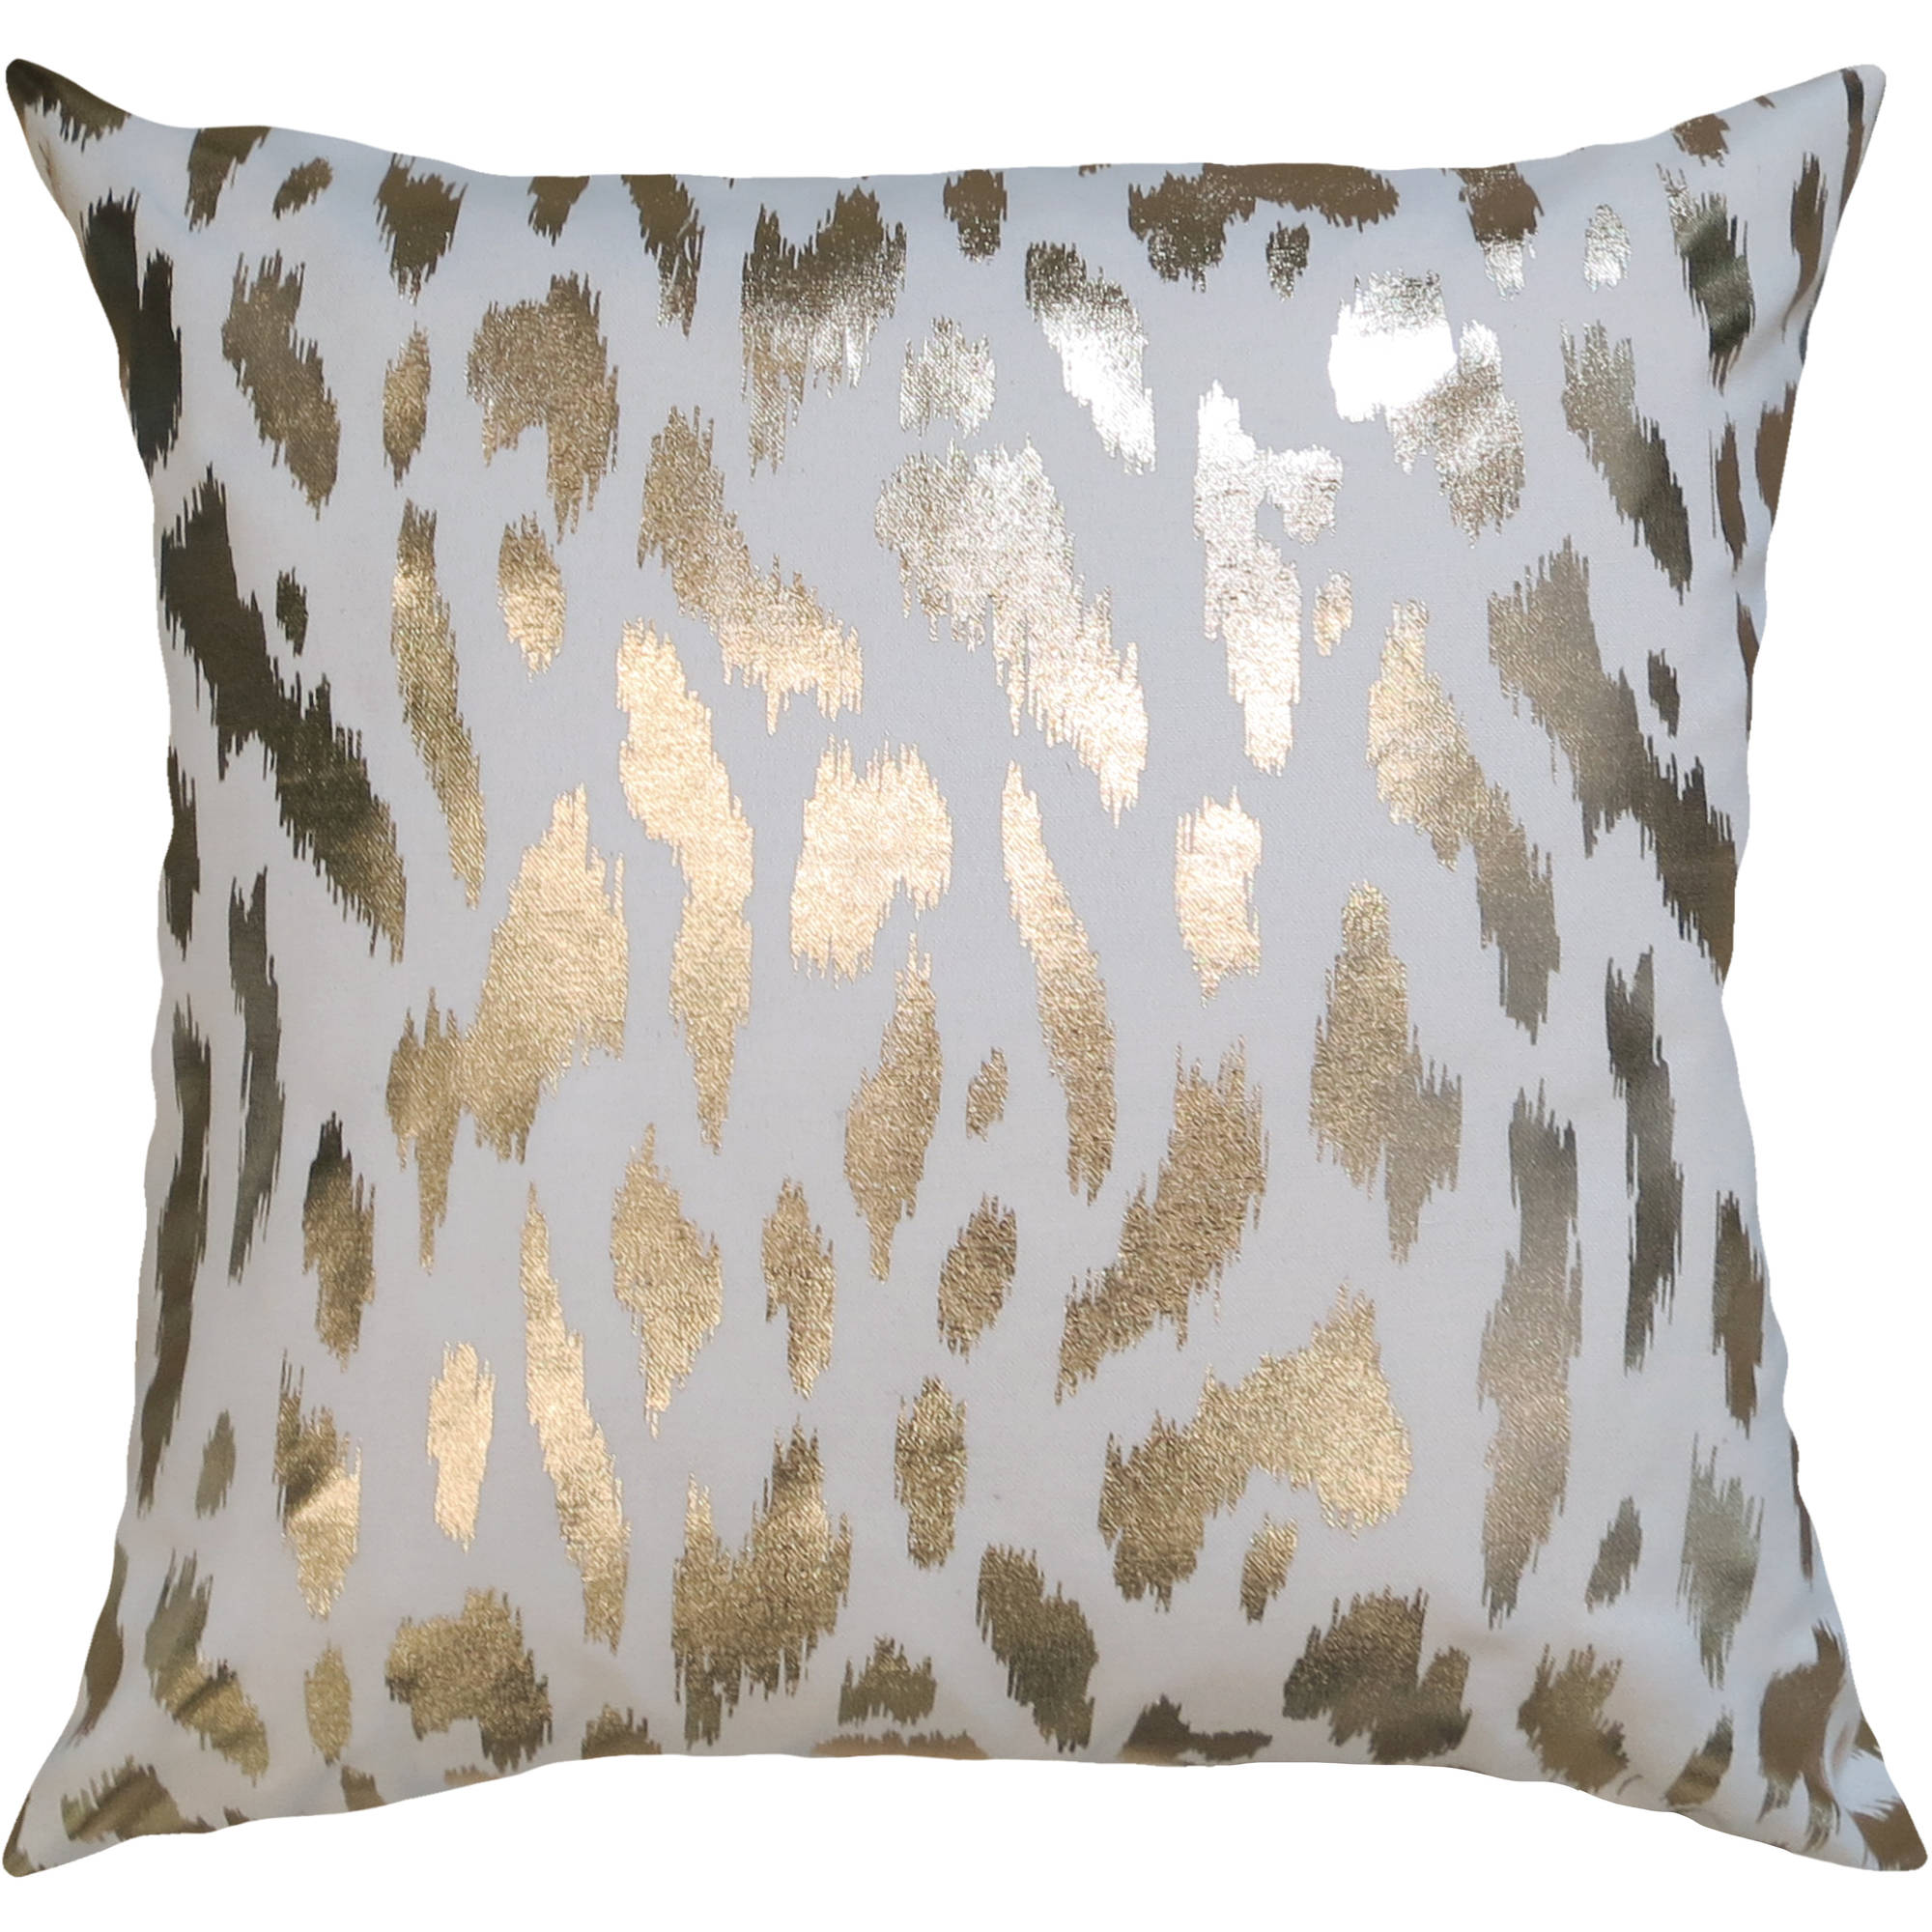 "Better Homes and Gardens Golden Cheetah 18"" x 18"" Poly/Cotton Fabric Gold Foil Print Pillow"